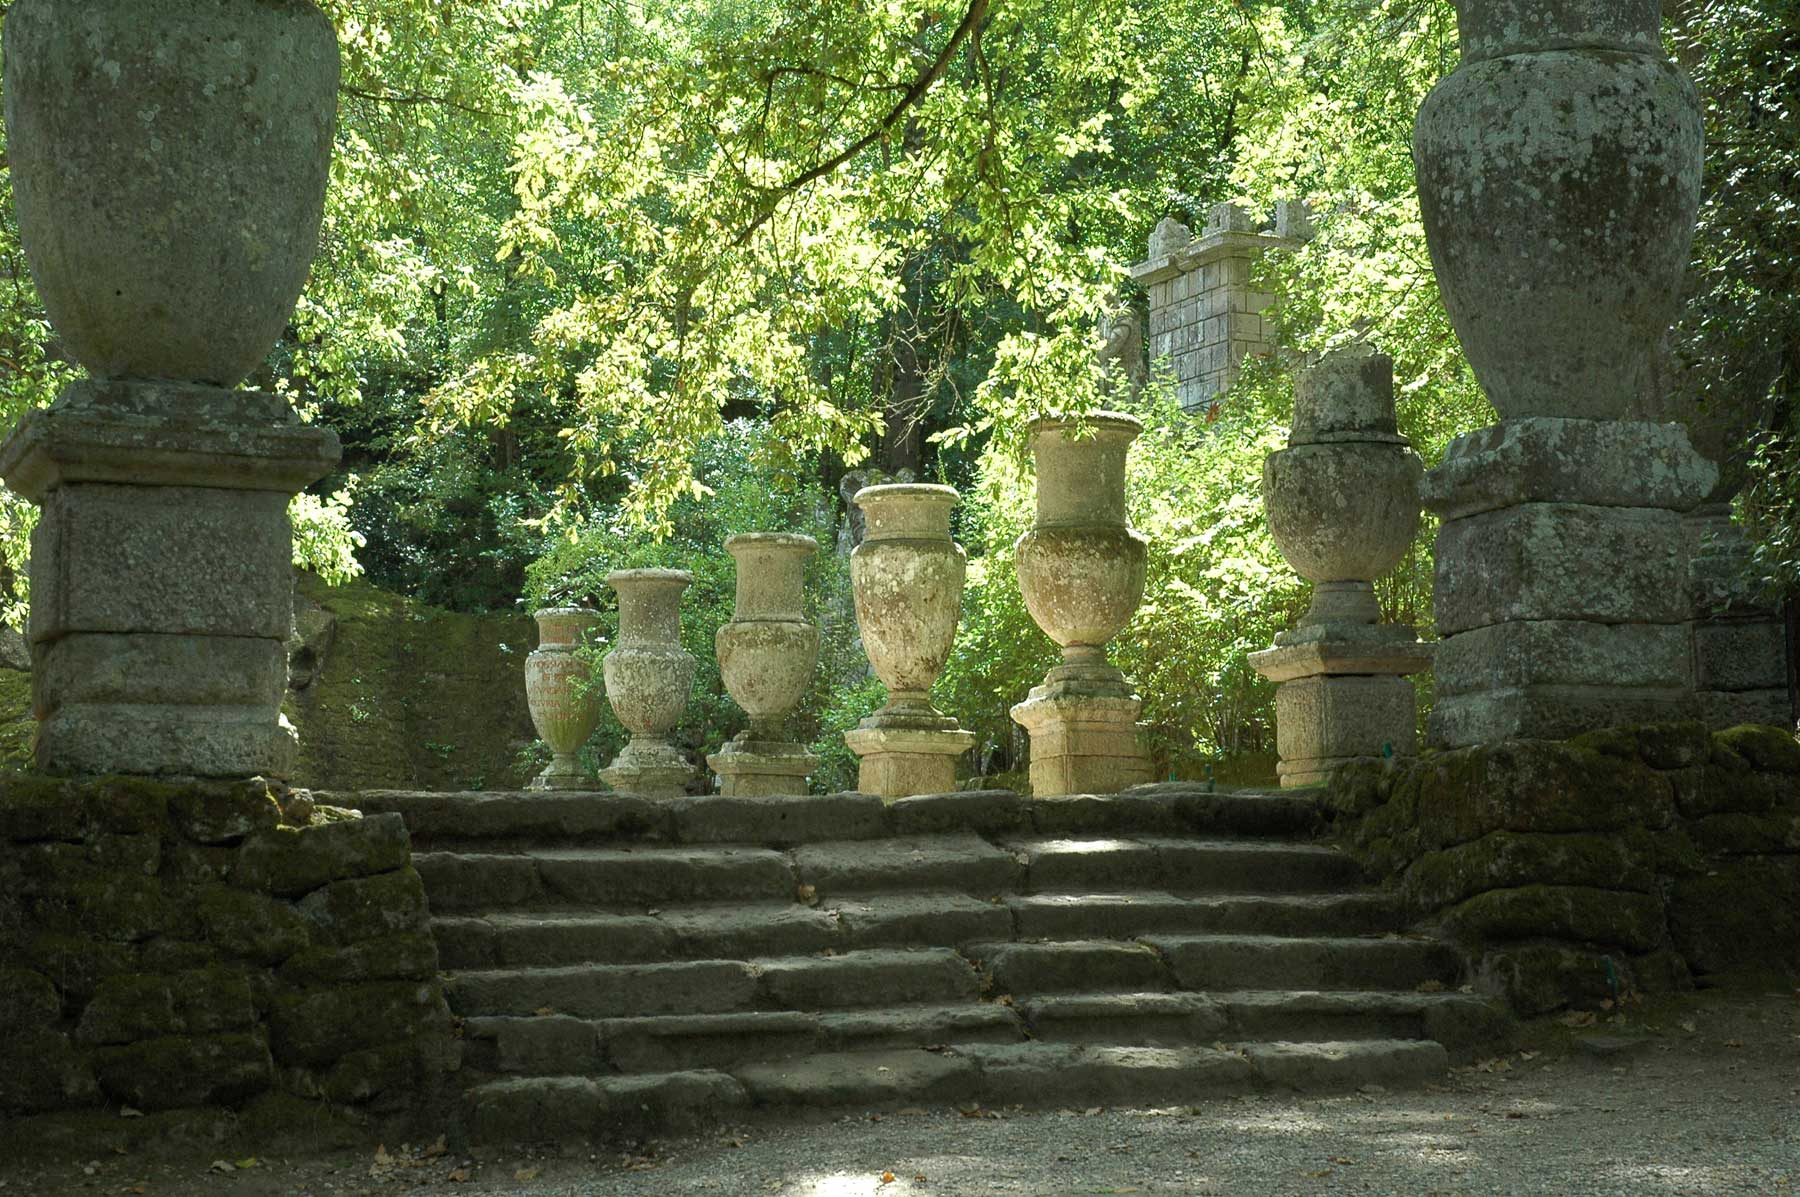 Bomarzo park van de monsters